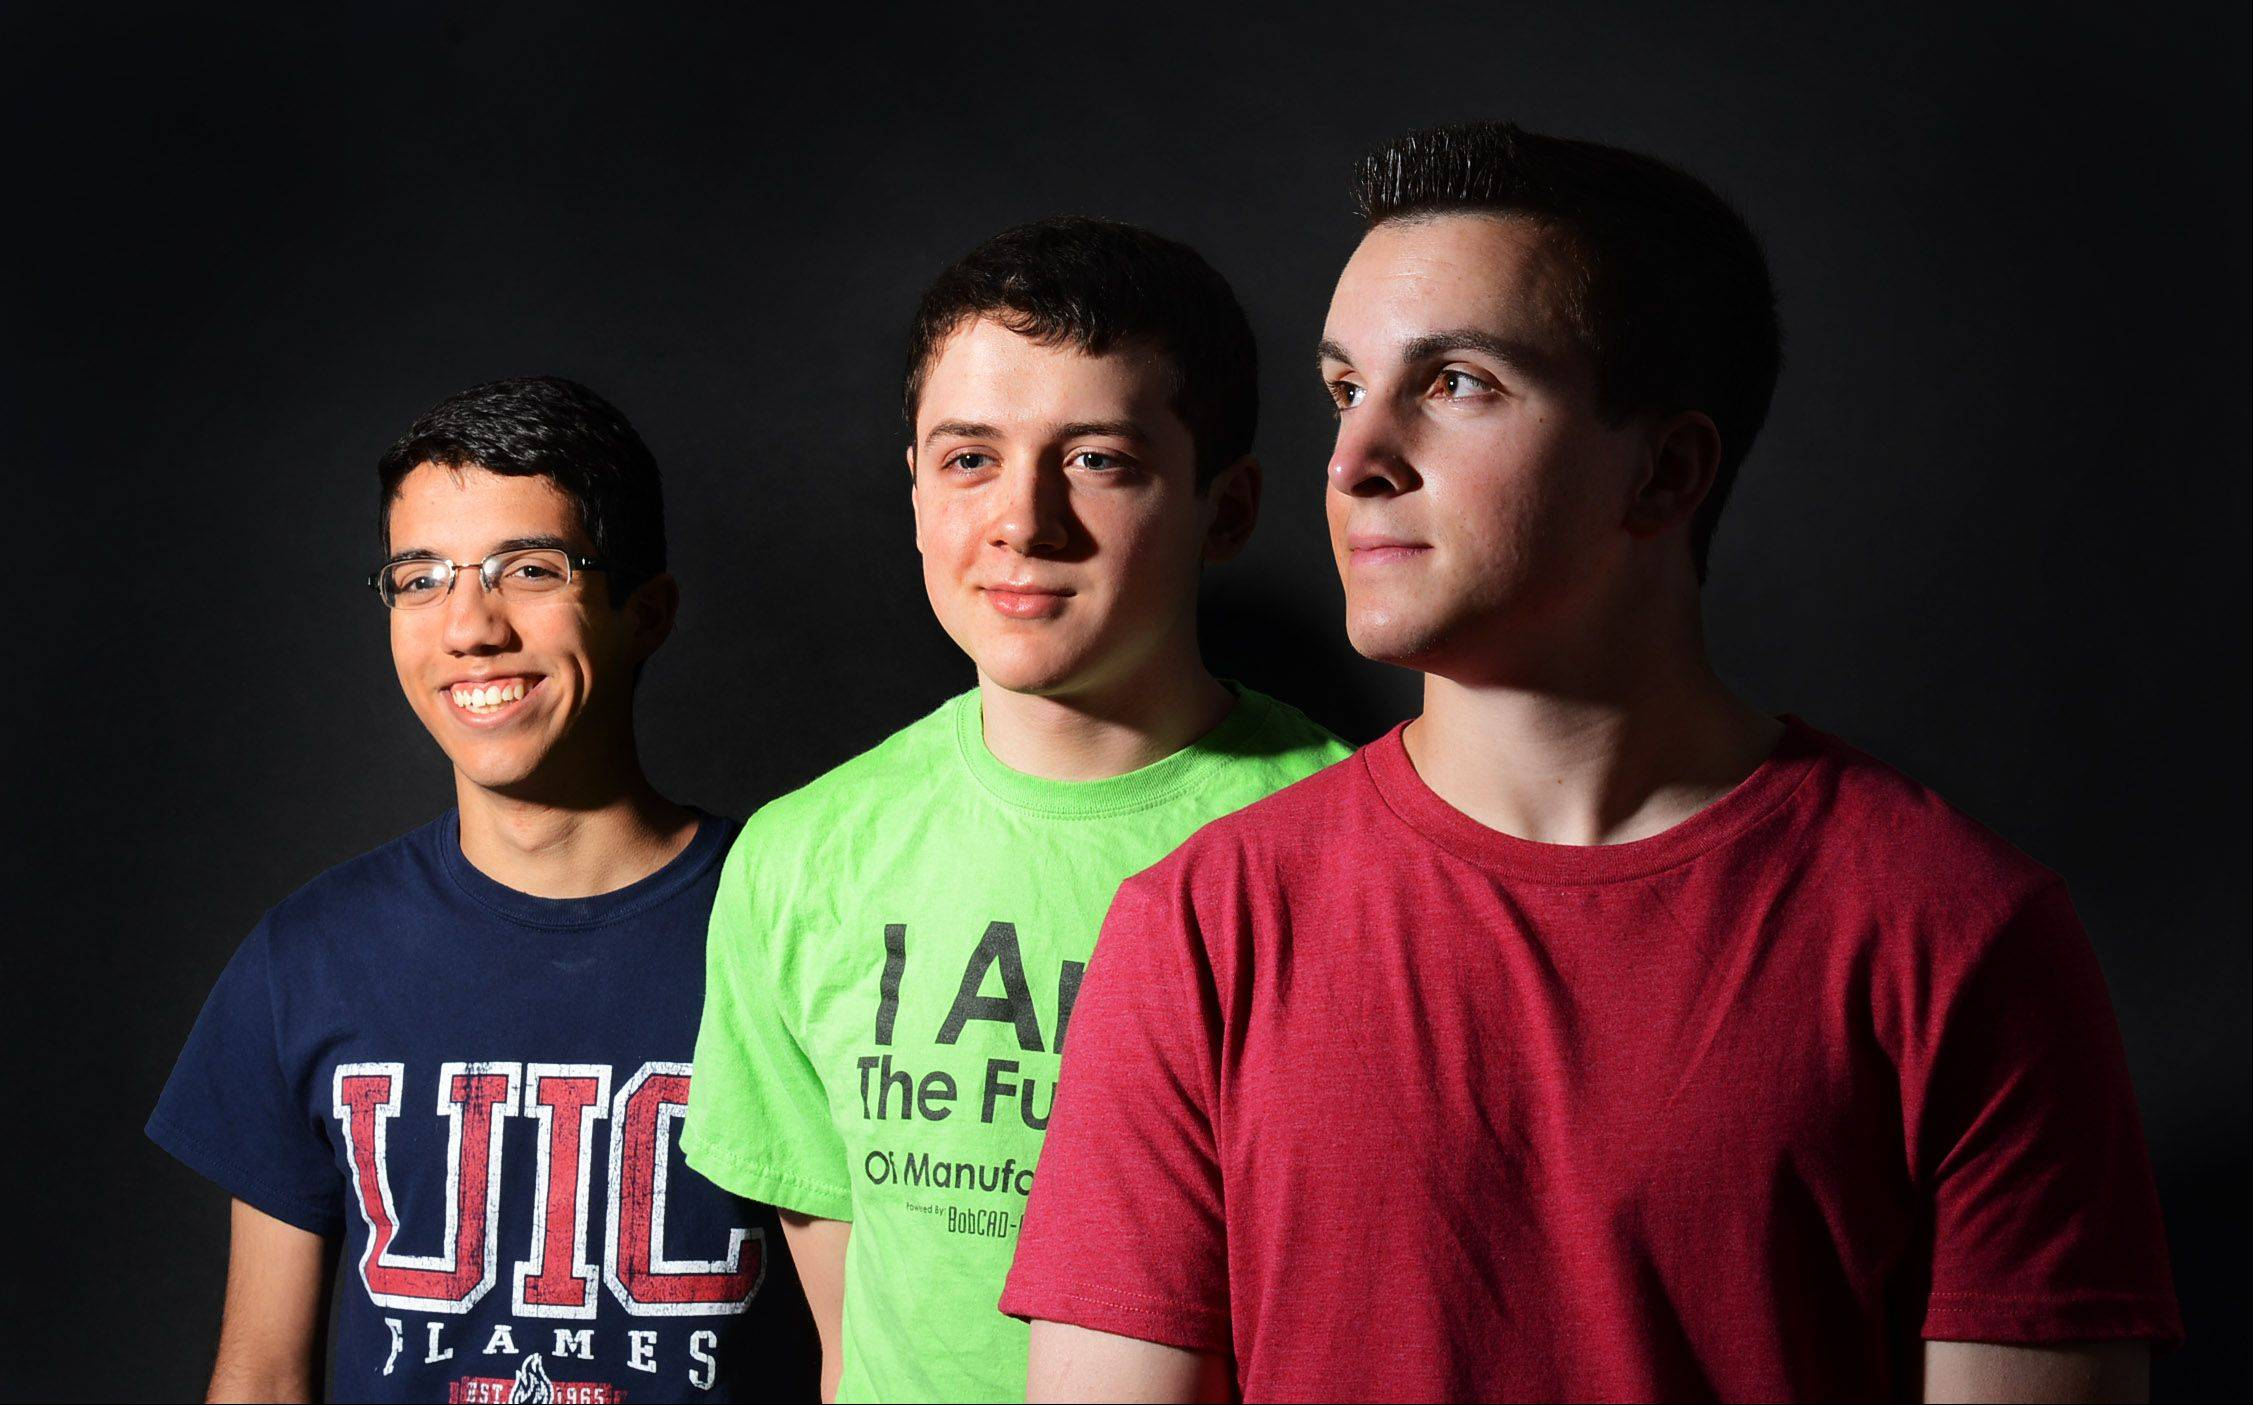 From left, Beny Romo, 17, of South Elgin, Jonathan Kuruc, 18, of Bartlett, and Justin Markel, 18, of South Elgin developed a first-of-its-kind prosthetic leg for a regional competition. The recent grads from South Elgin High School now hope to patent the leg and start their own business to market it before heading off to college.